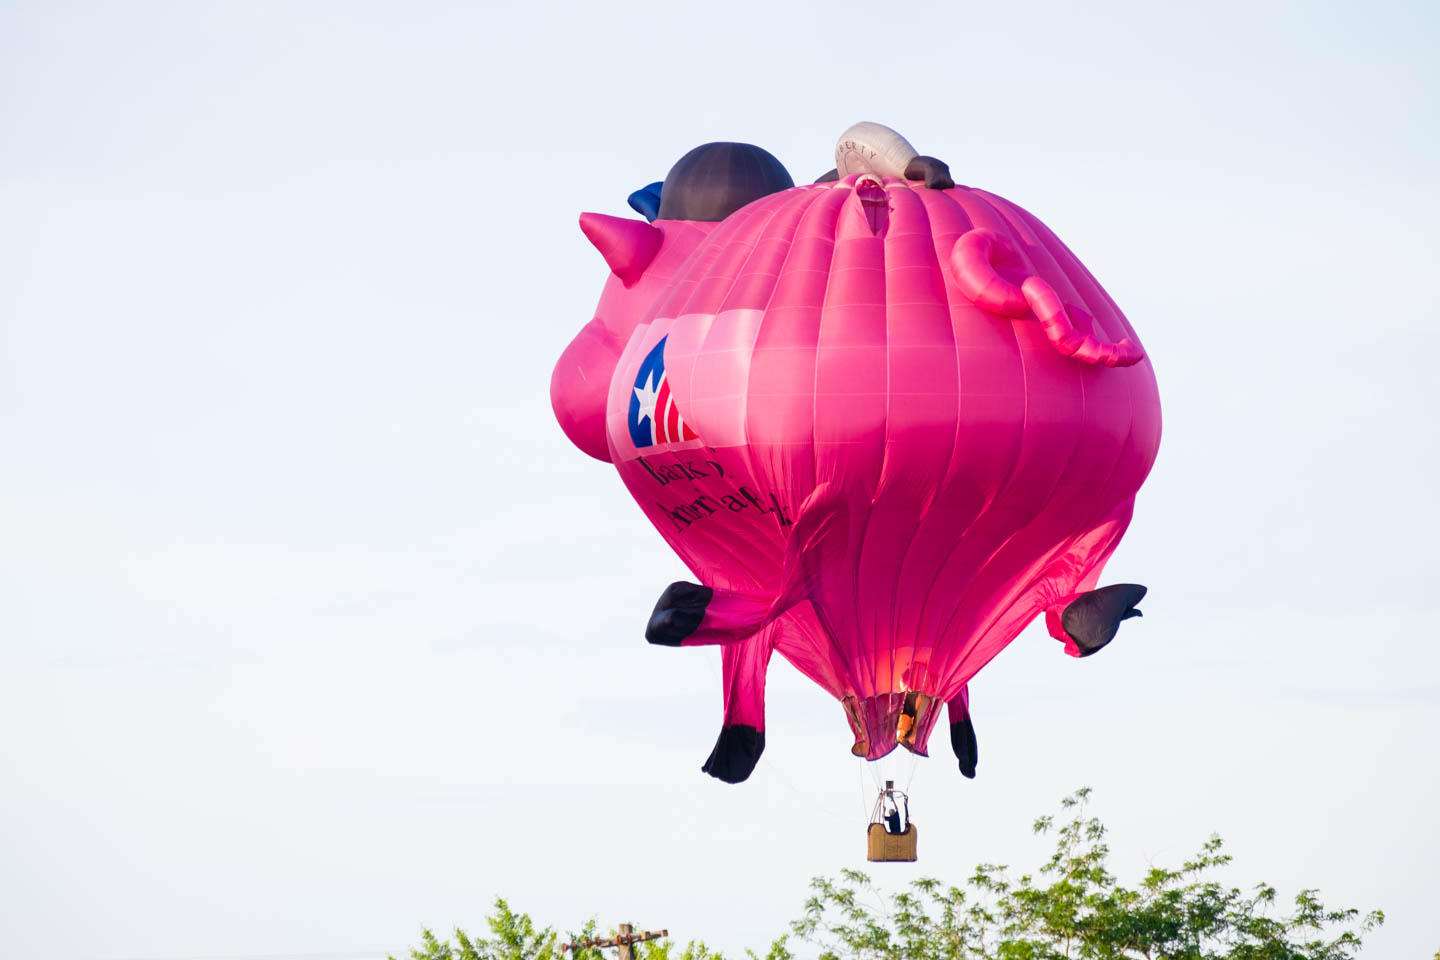 Pink pig hot air balloon comes in for a controlled crash landing